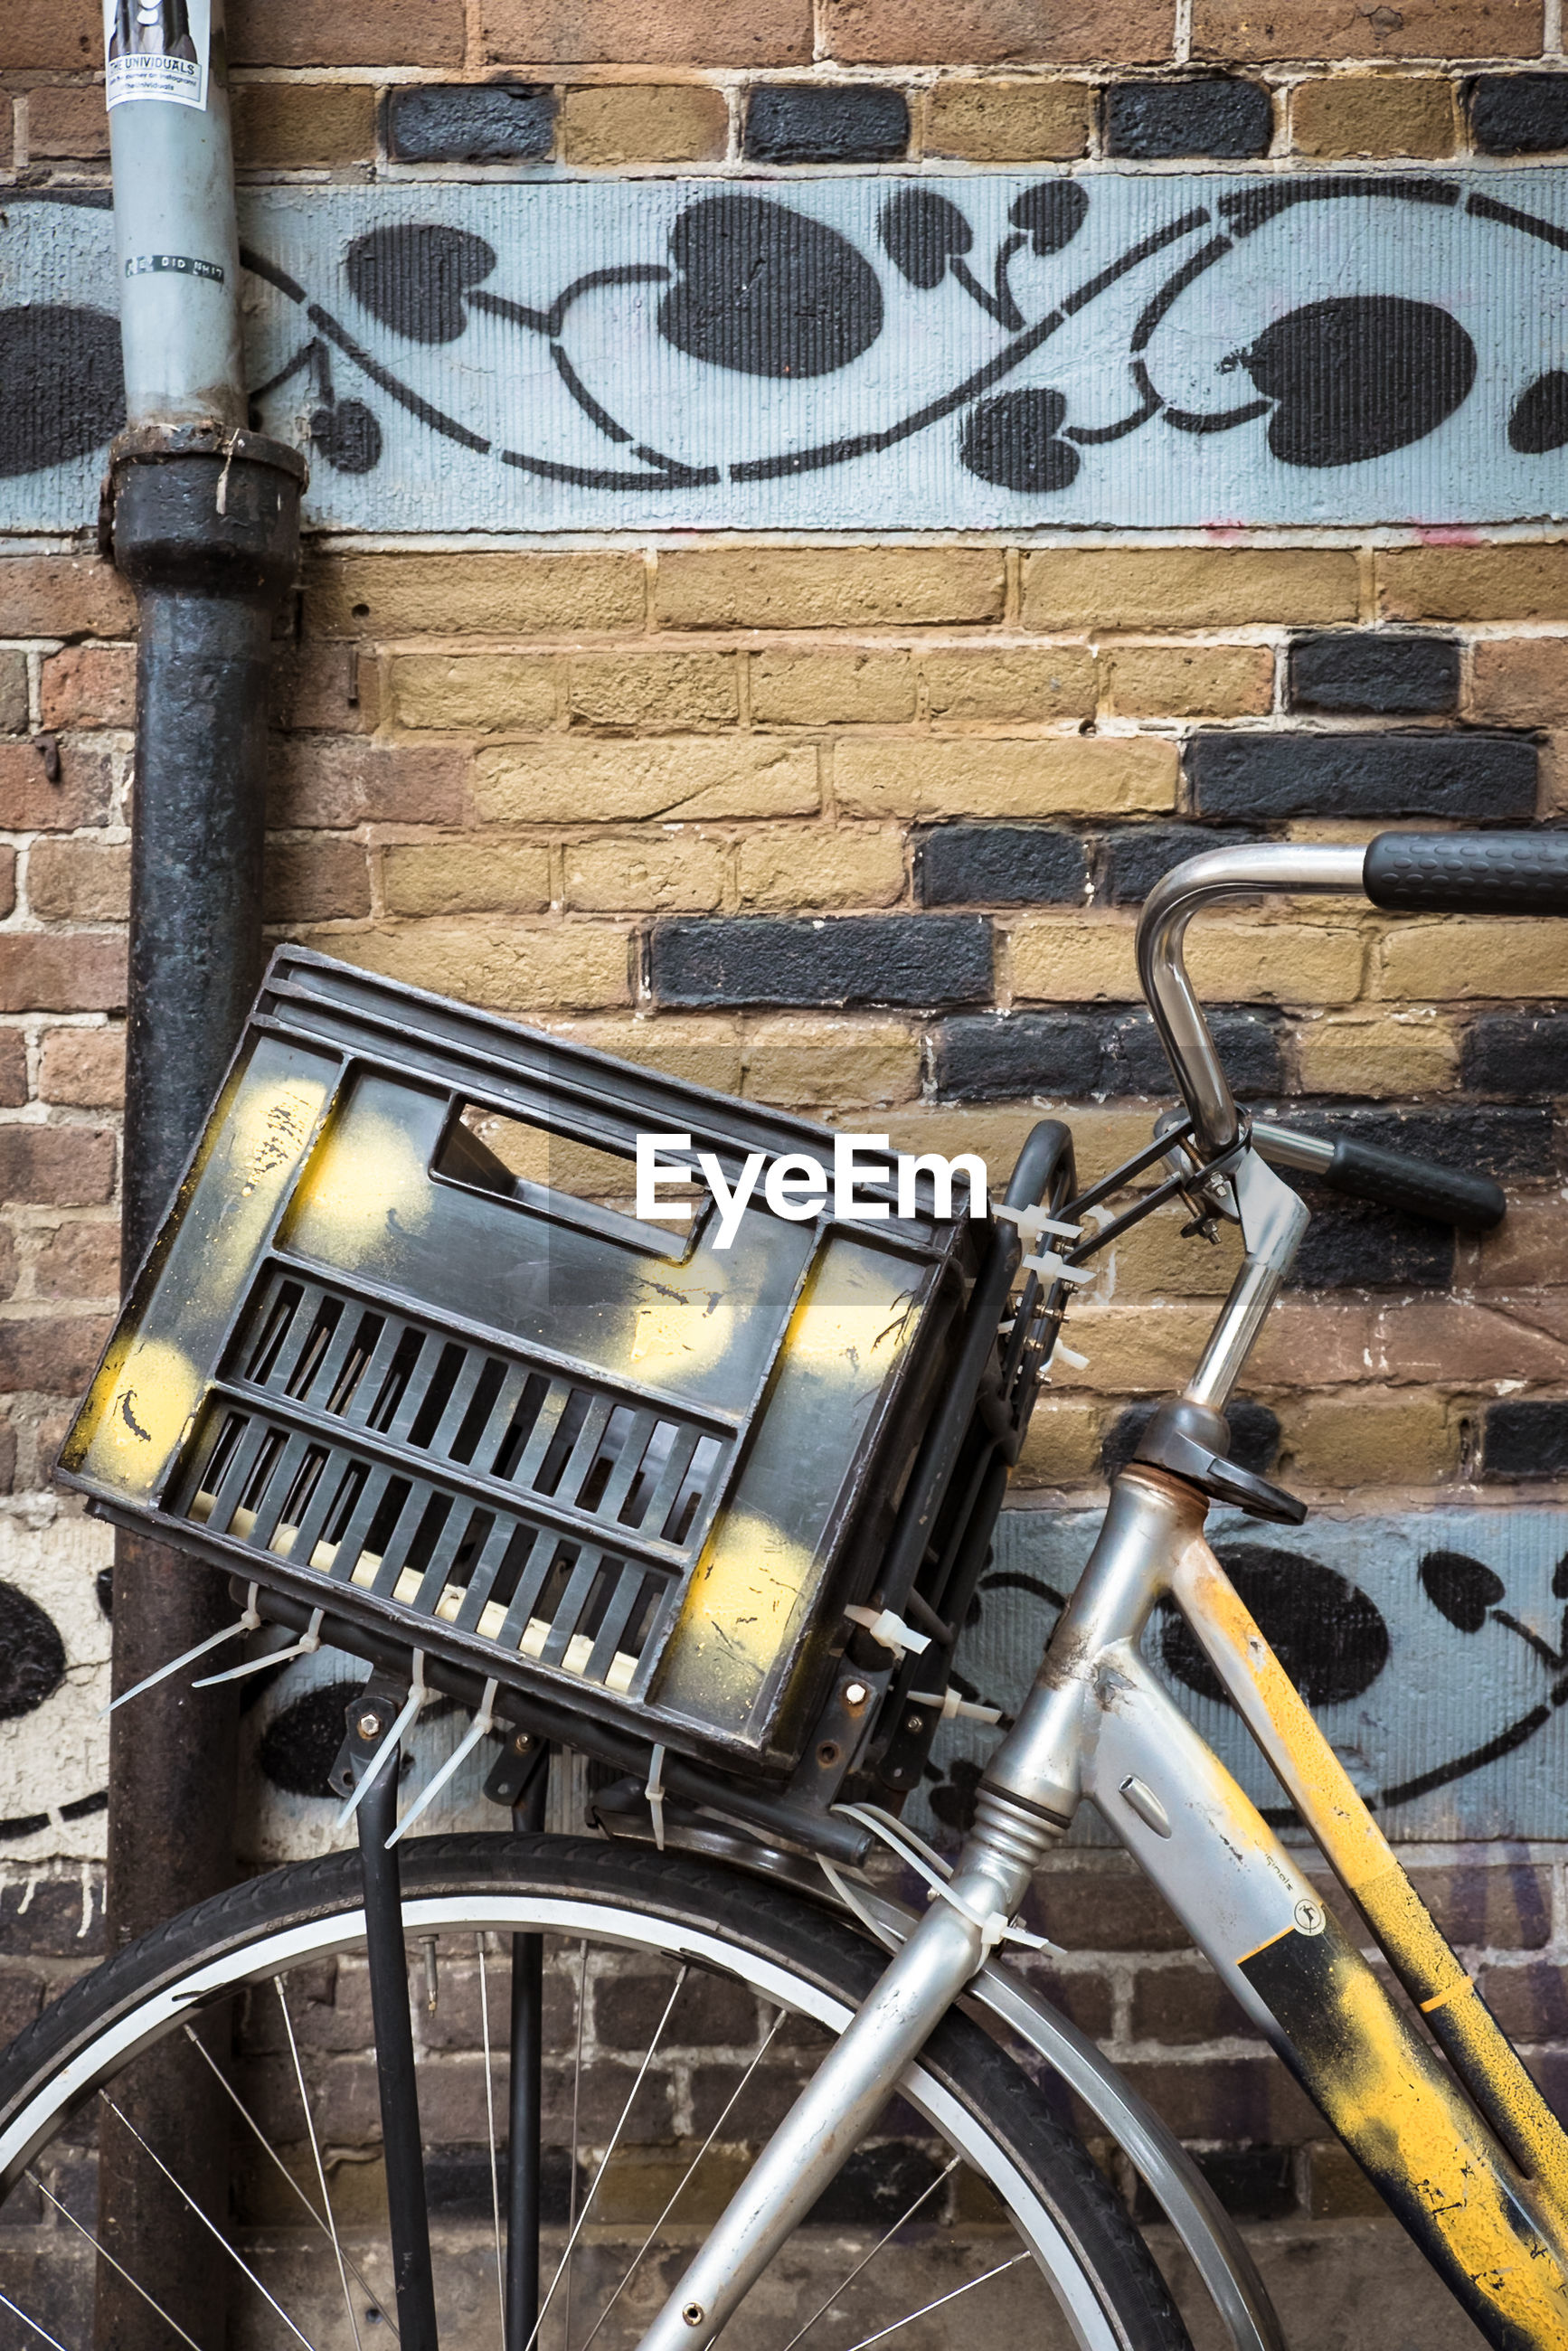 wall - building feature, no people, day, metal, wall, bicycle, outdoors, architecture, transportation, built structure, old, abandoned, building exterior, mode of transportation, technology, graffiti, close-up, electricity, arts culture and entertainment, wheel